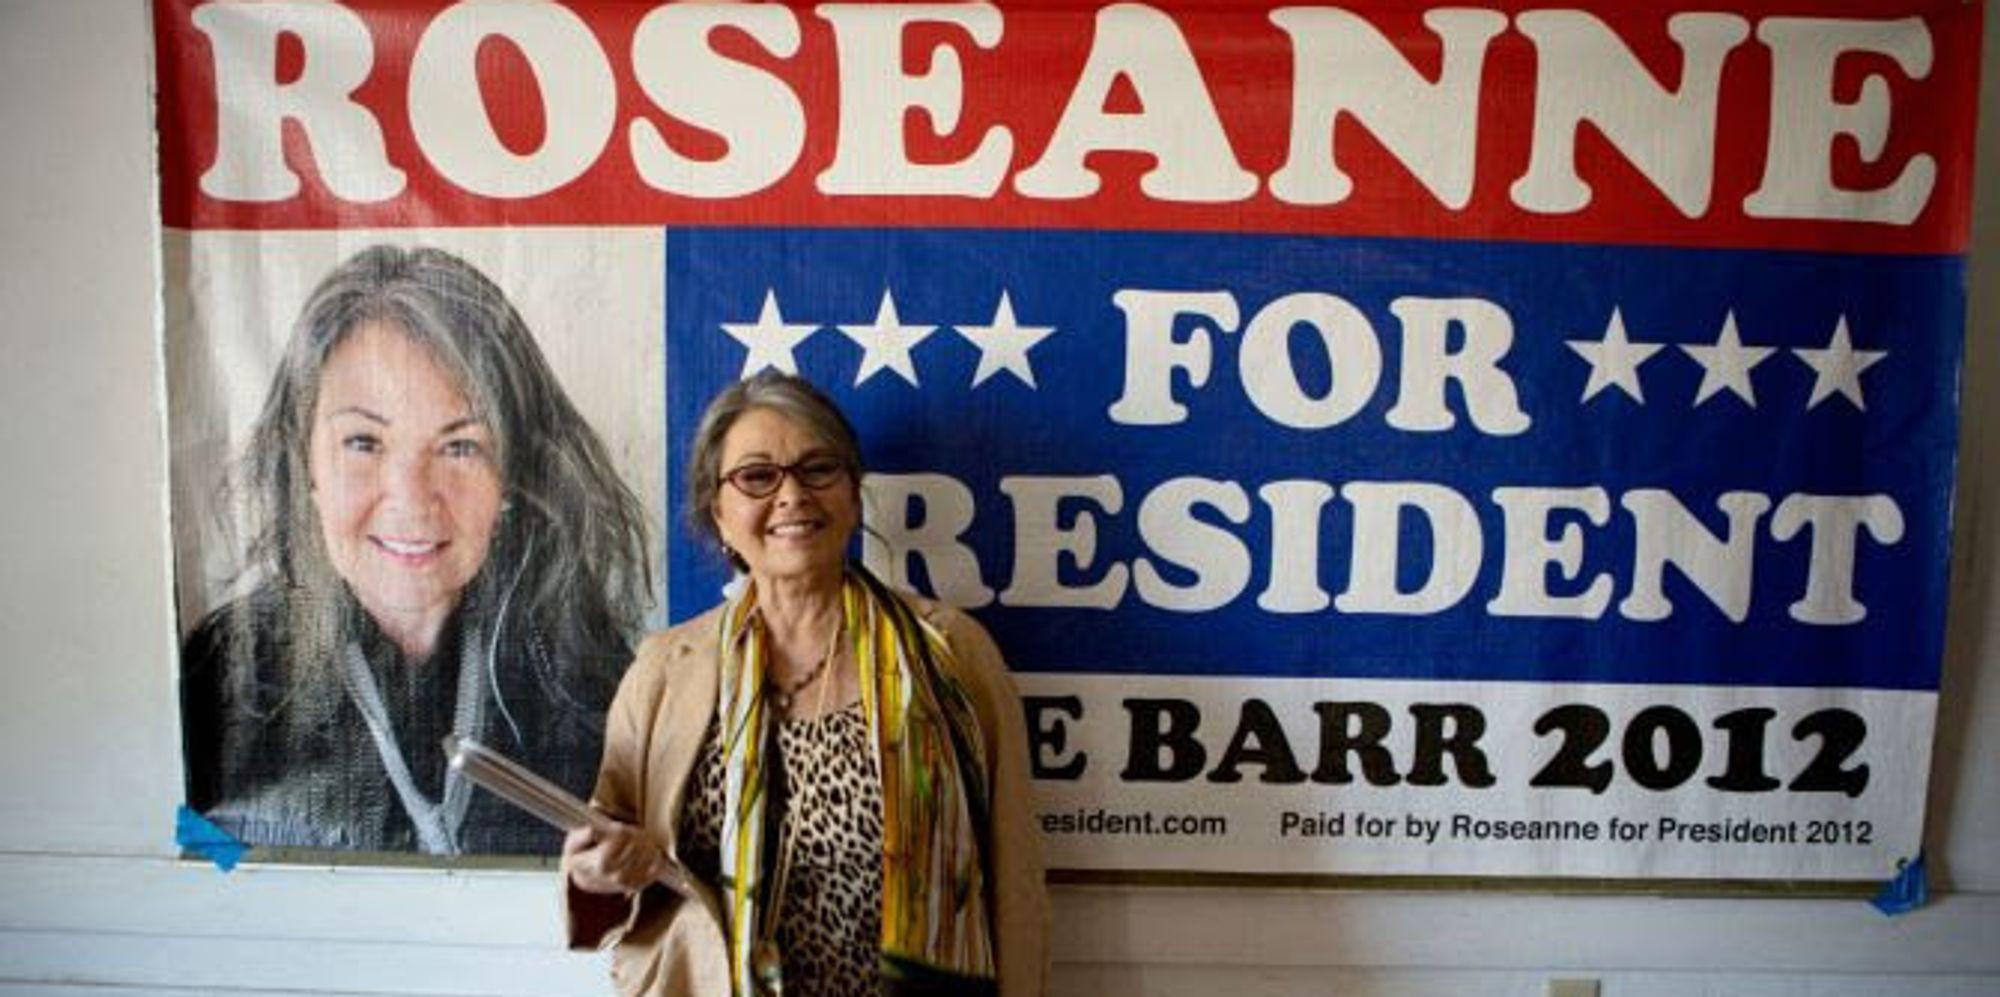 So, About That Whole Roseanne-Running-For-President Thing